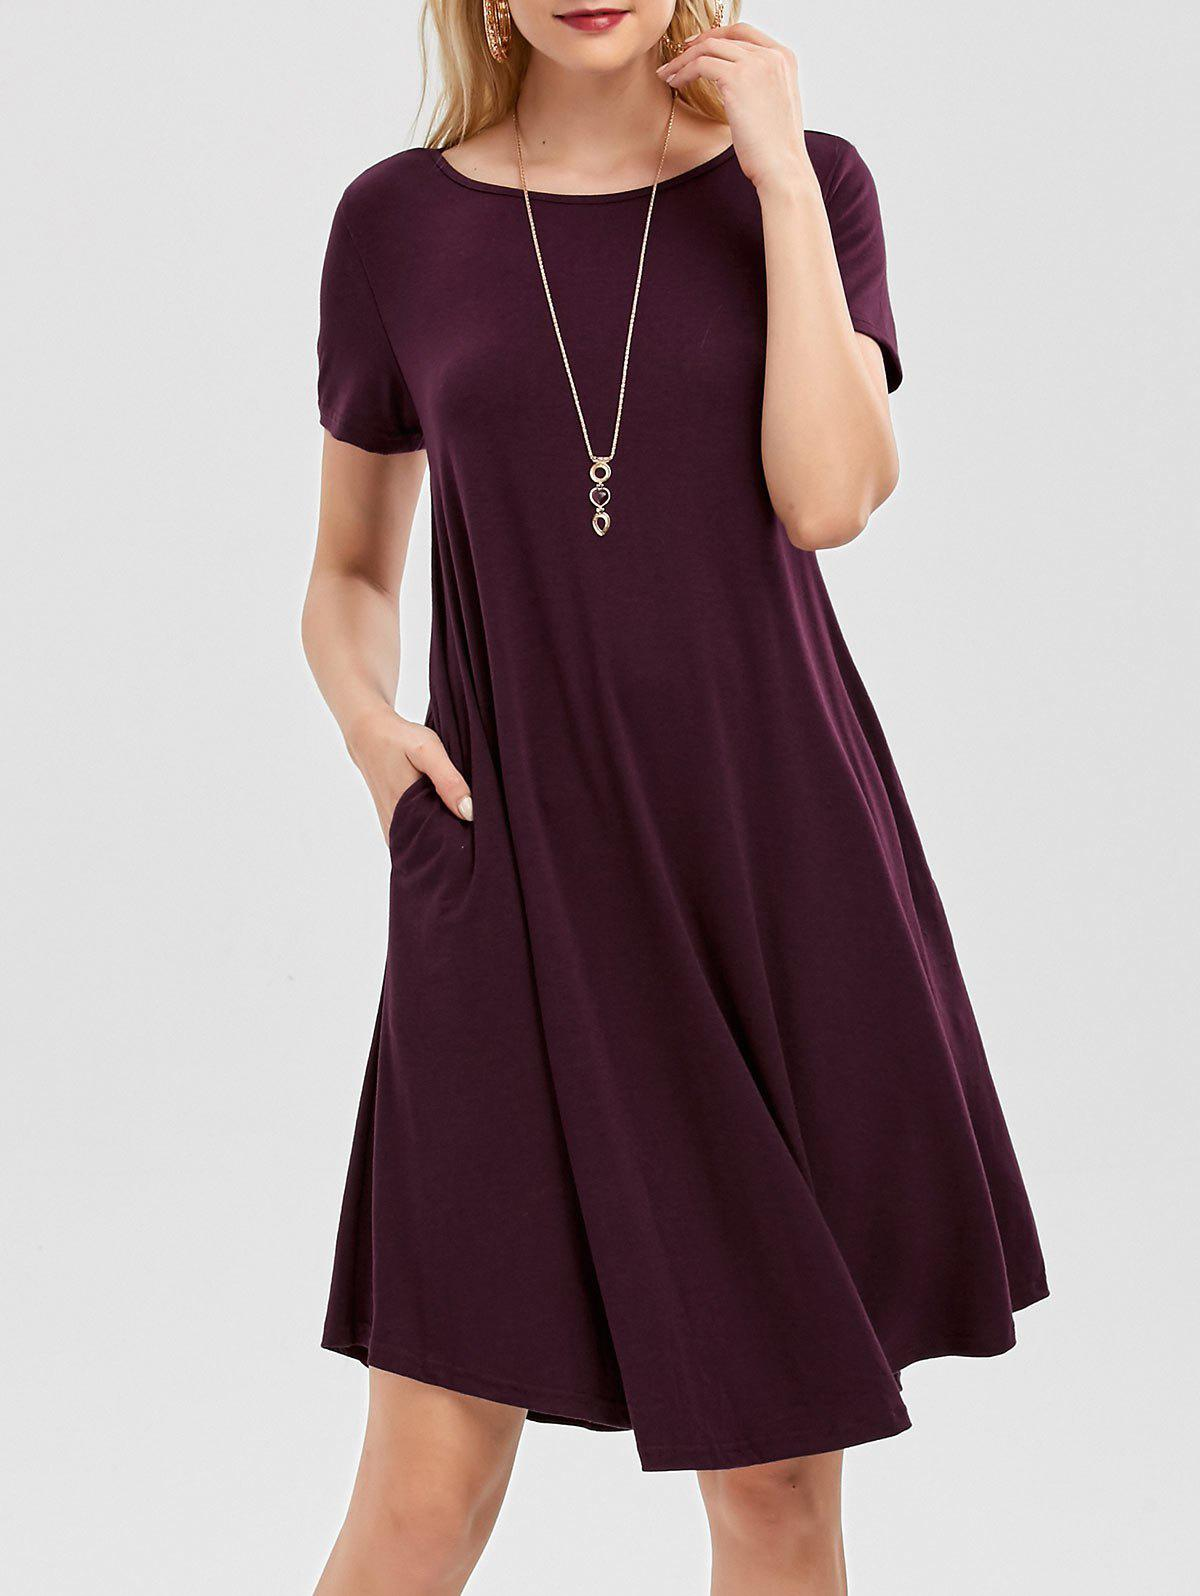 New Short Sleeve Pockets Short Casual Swing Dress